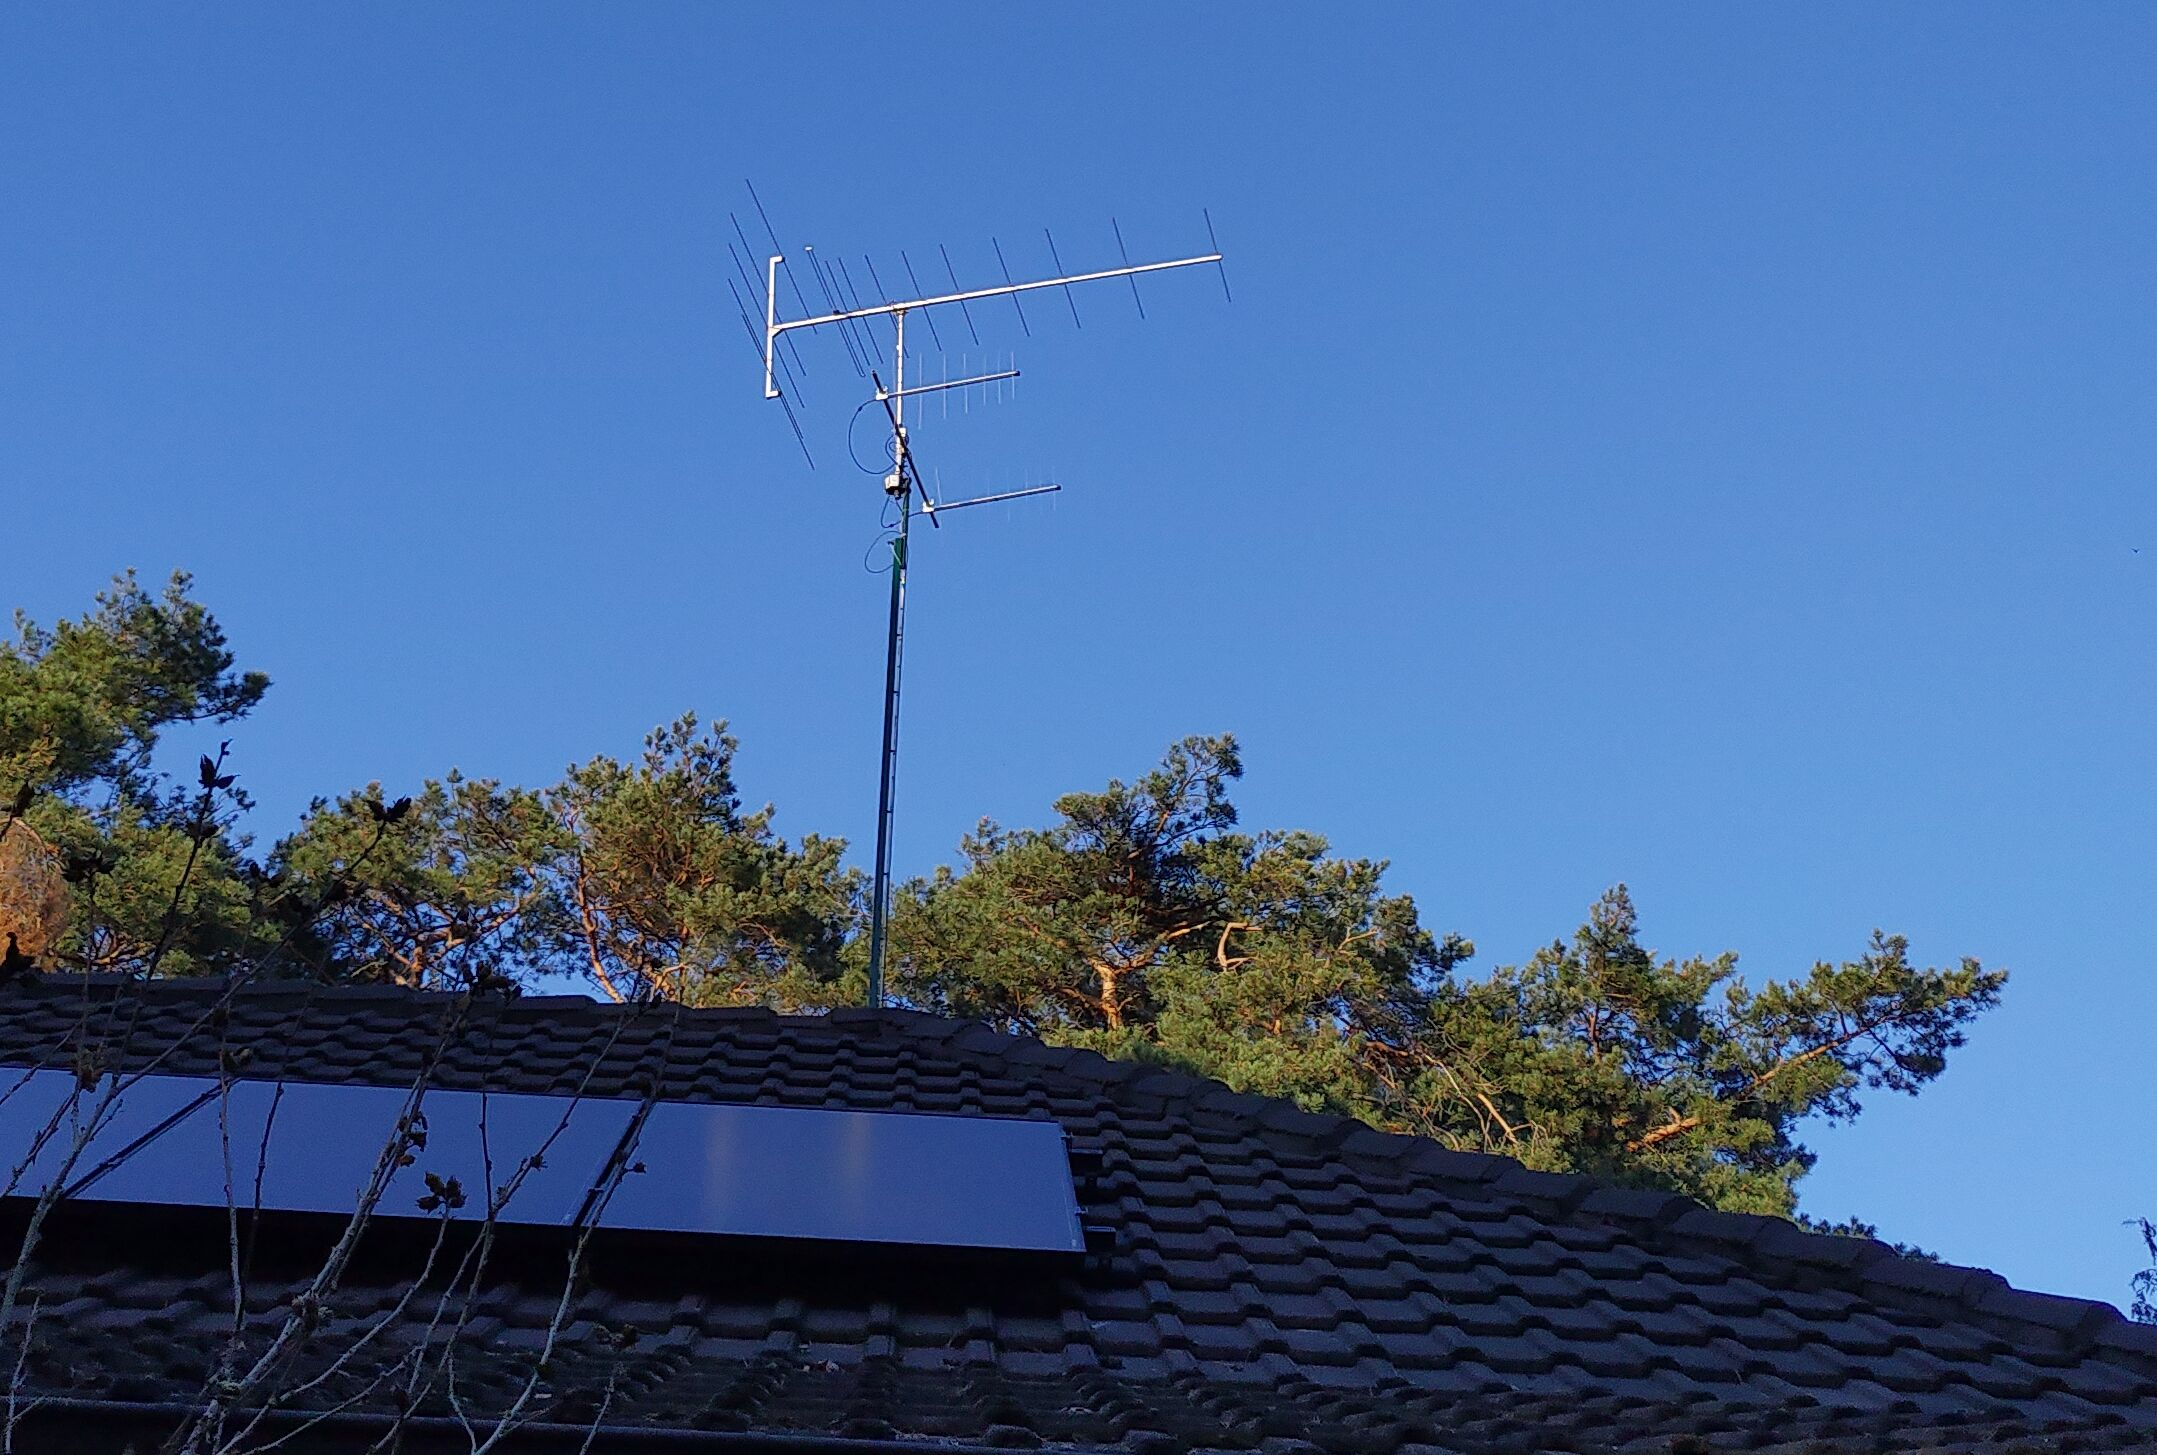 New set-up - stacked logpers beneath the Körner FM antenna.